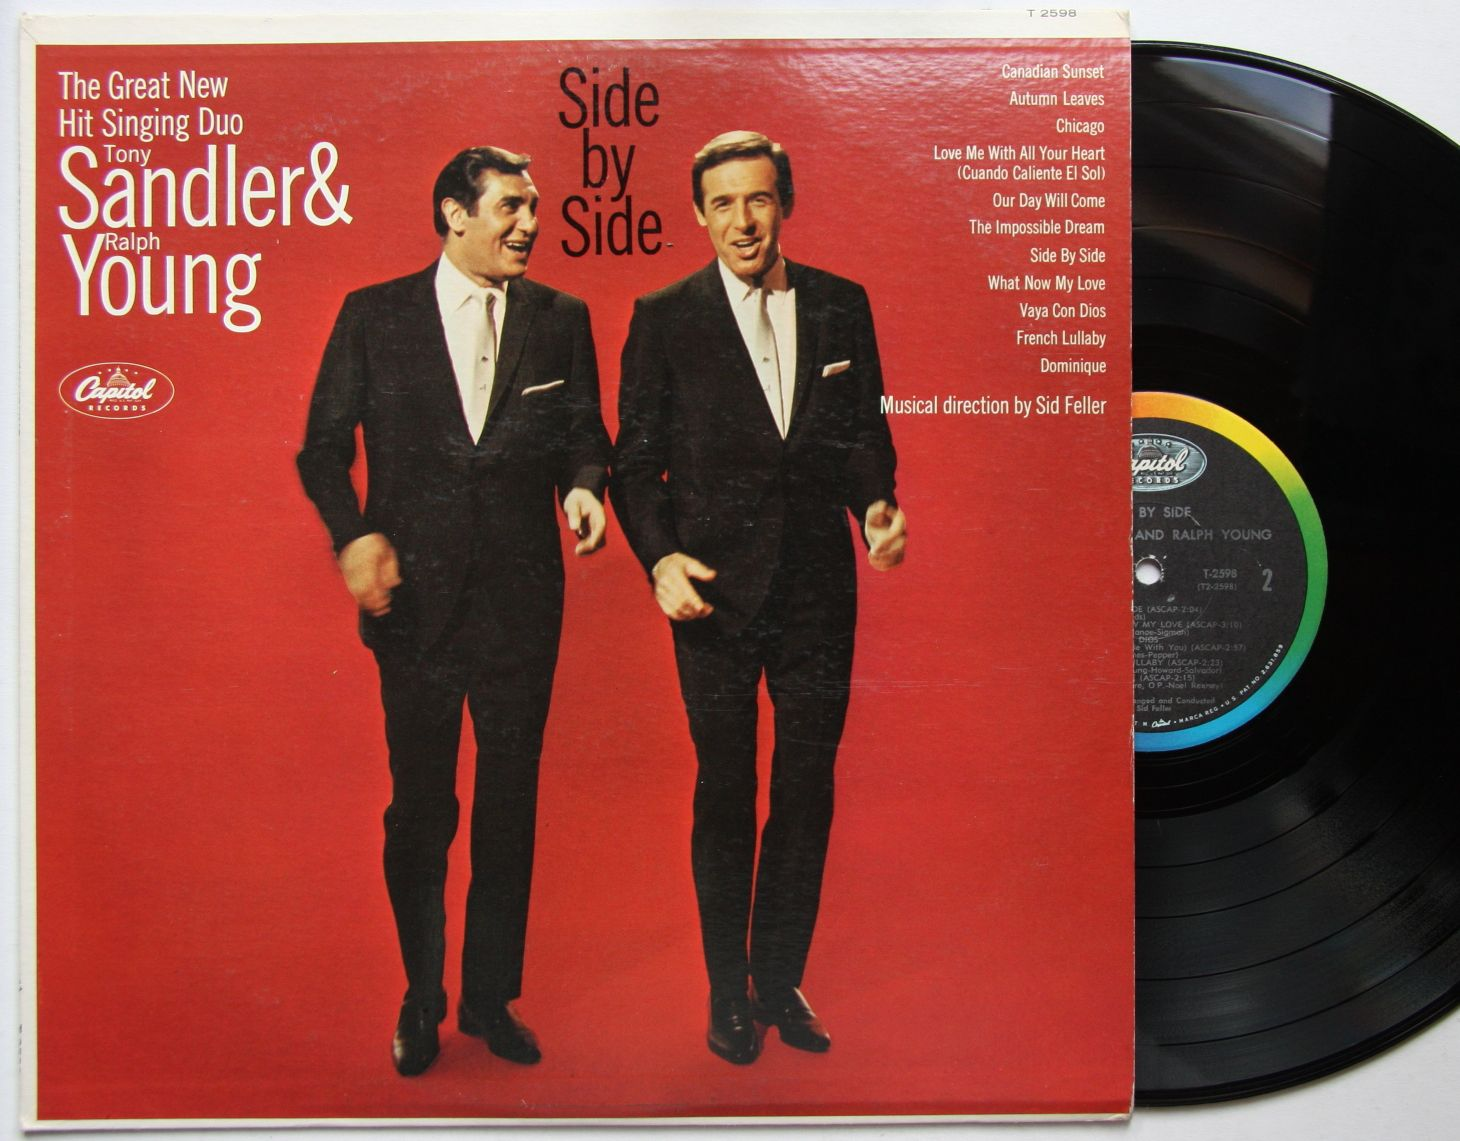 Sandler & Young - Odds & Ends